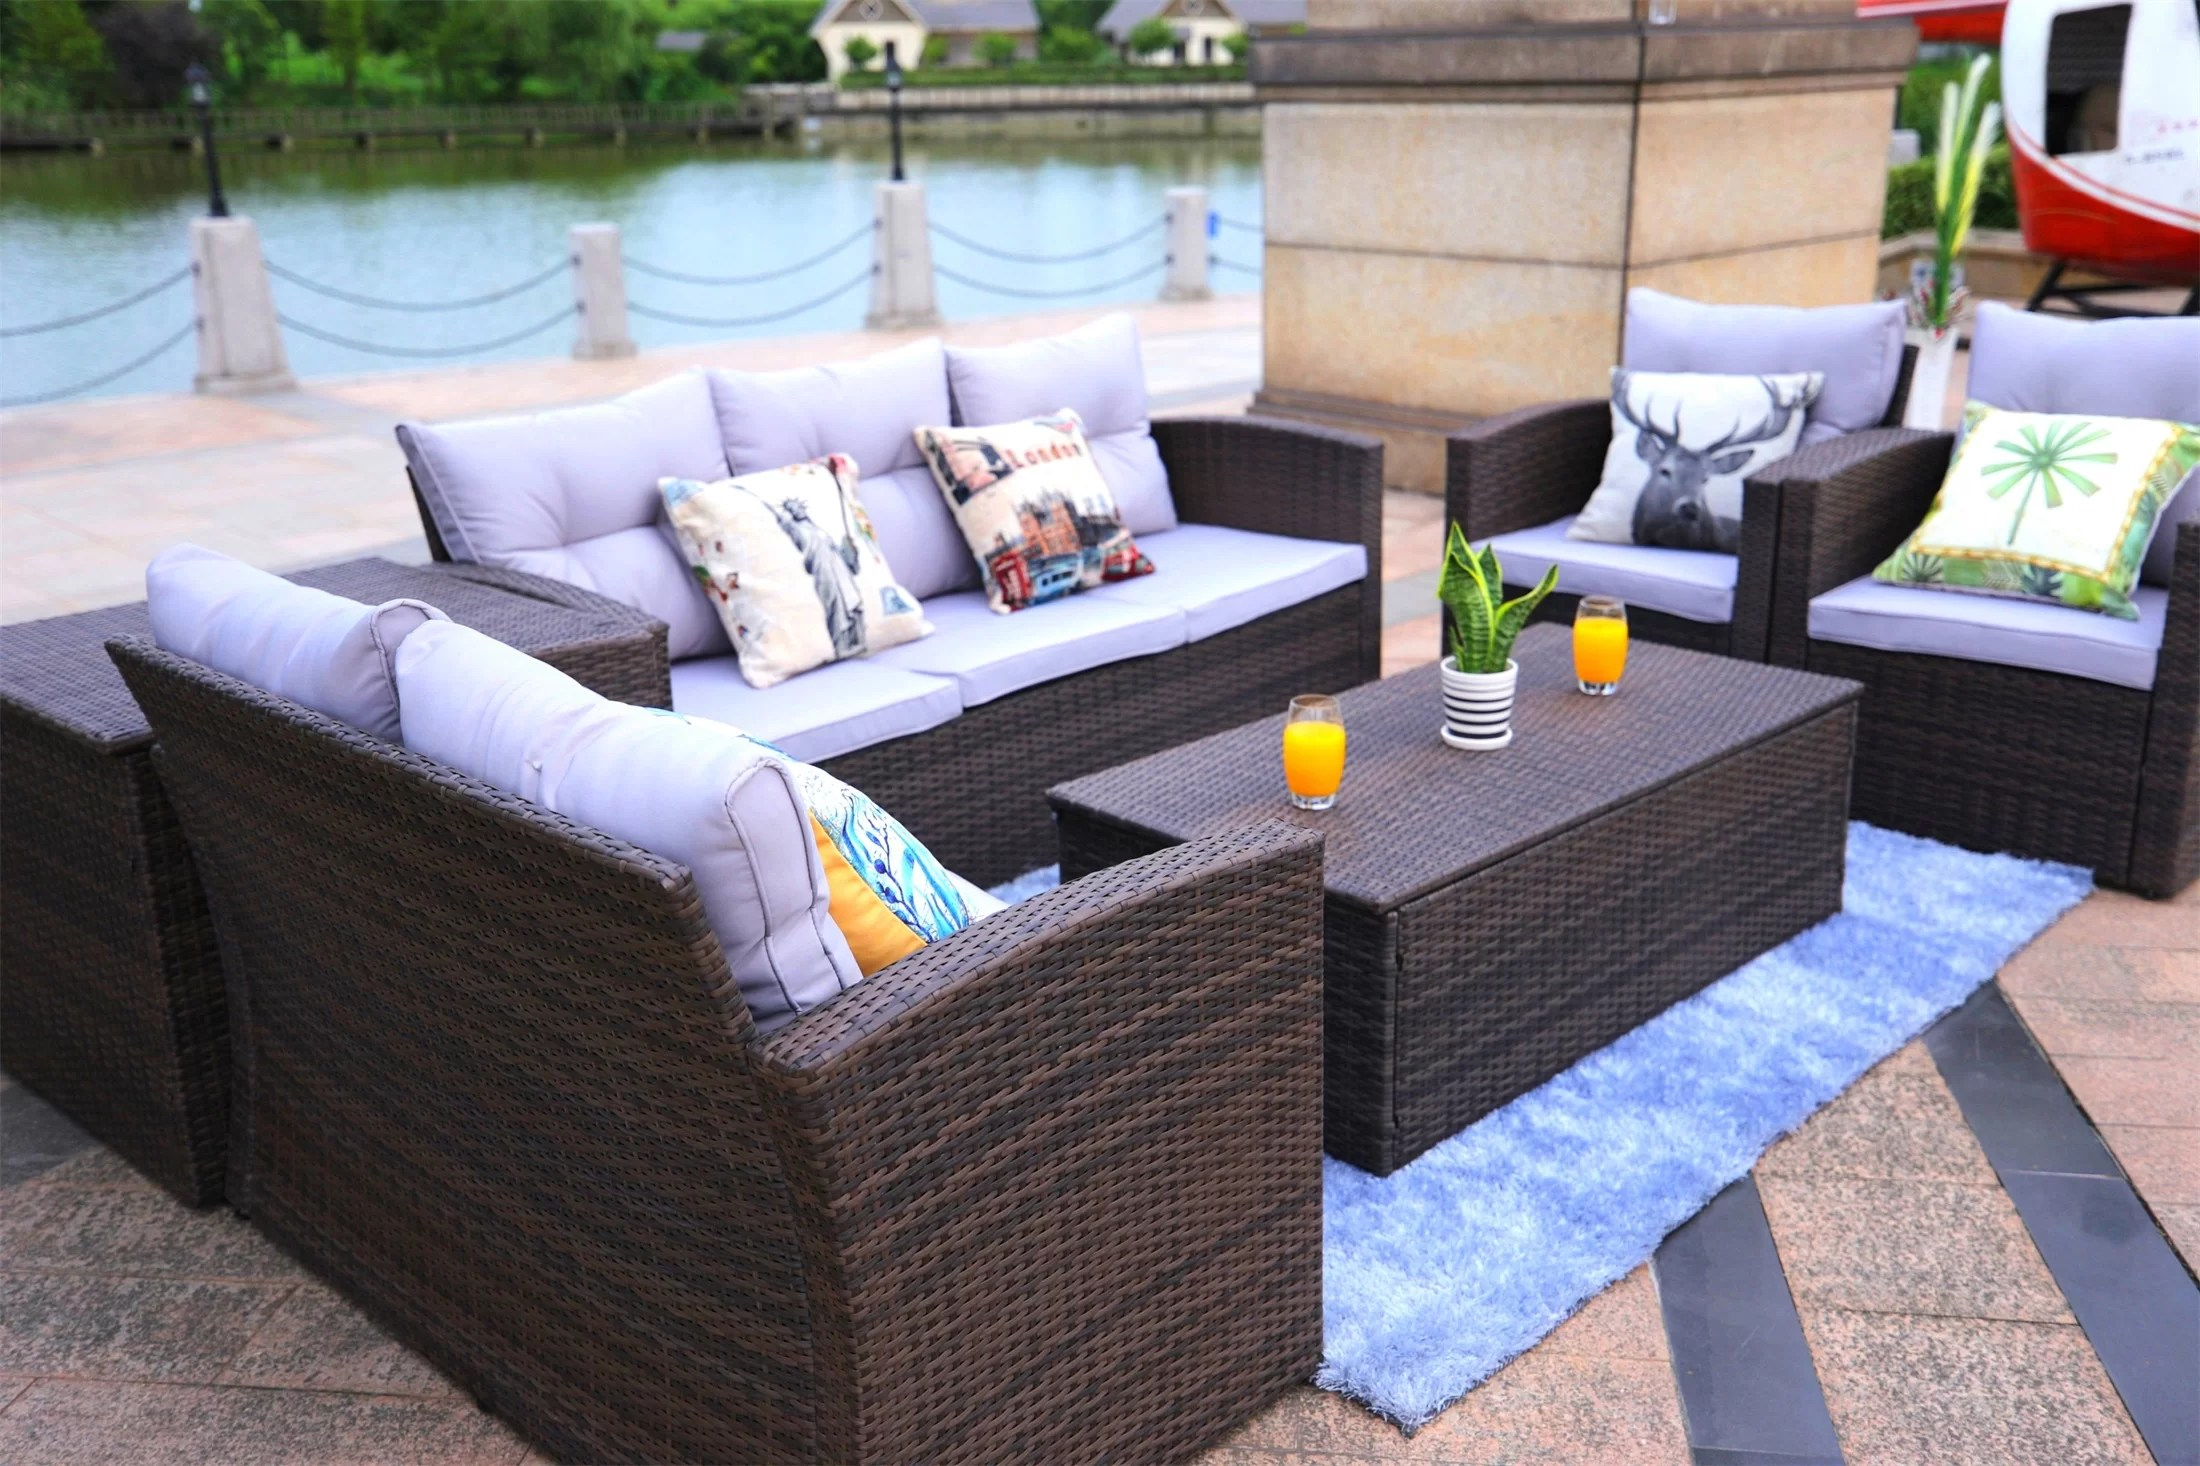 Baptist 6 Piece Rattan Sofa Set With Cushions Veronica 6 Piece Rattan Sofa Seating Group With Cushions